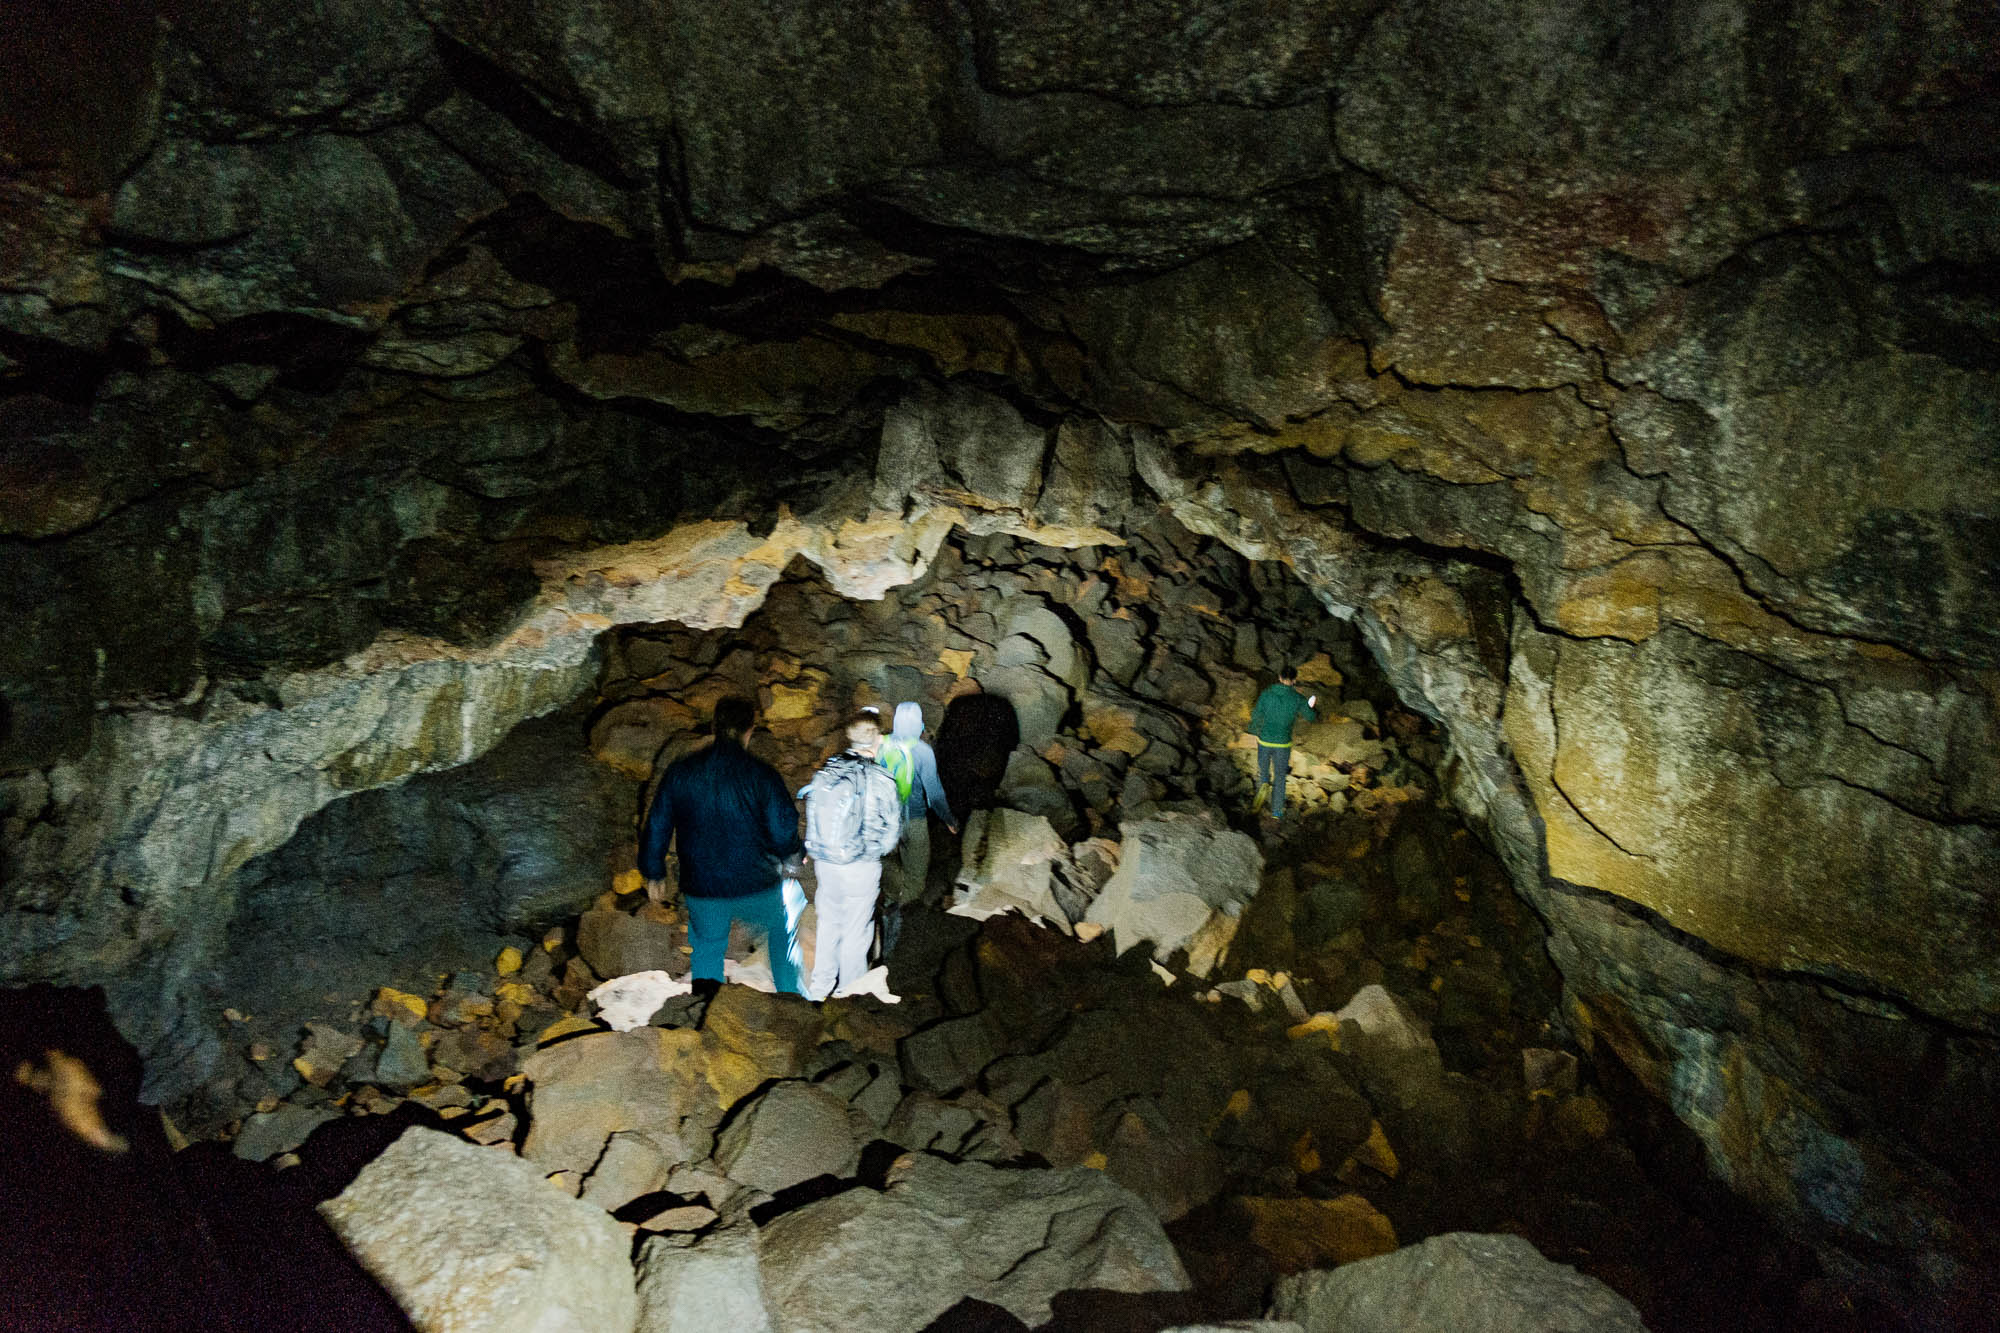 Heading into the Caves